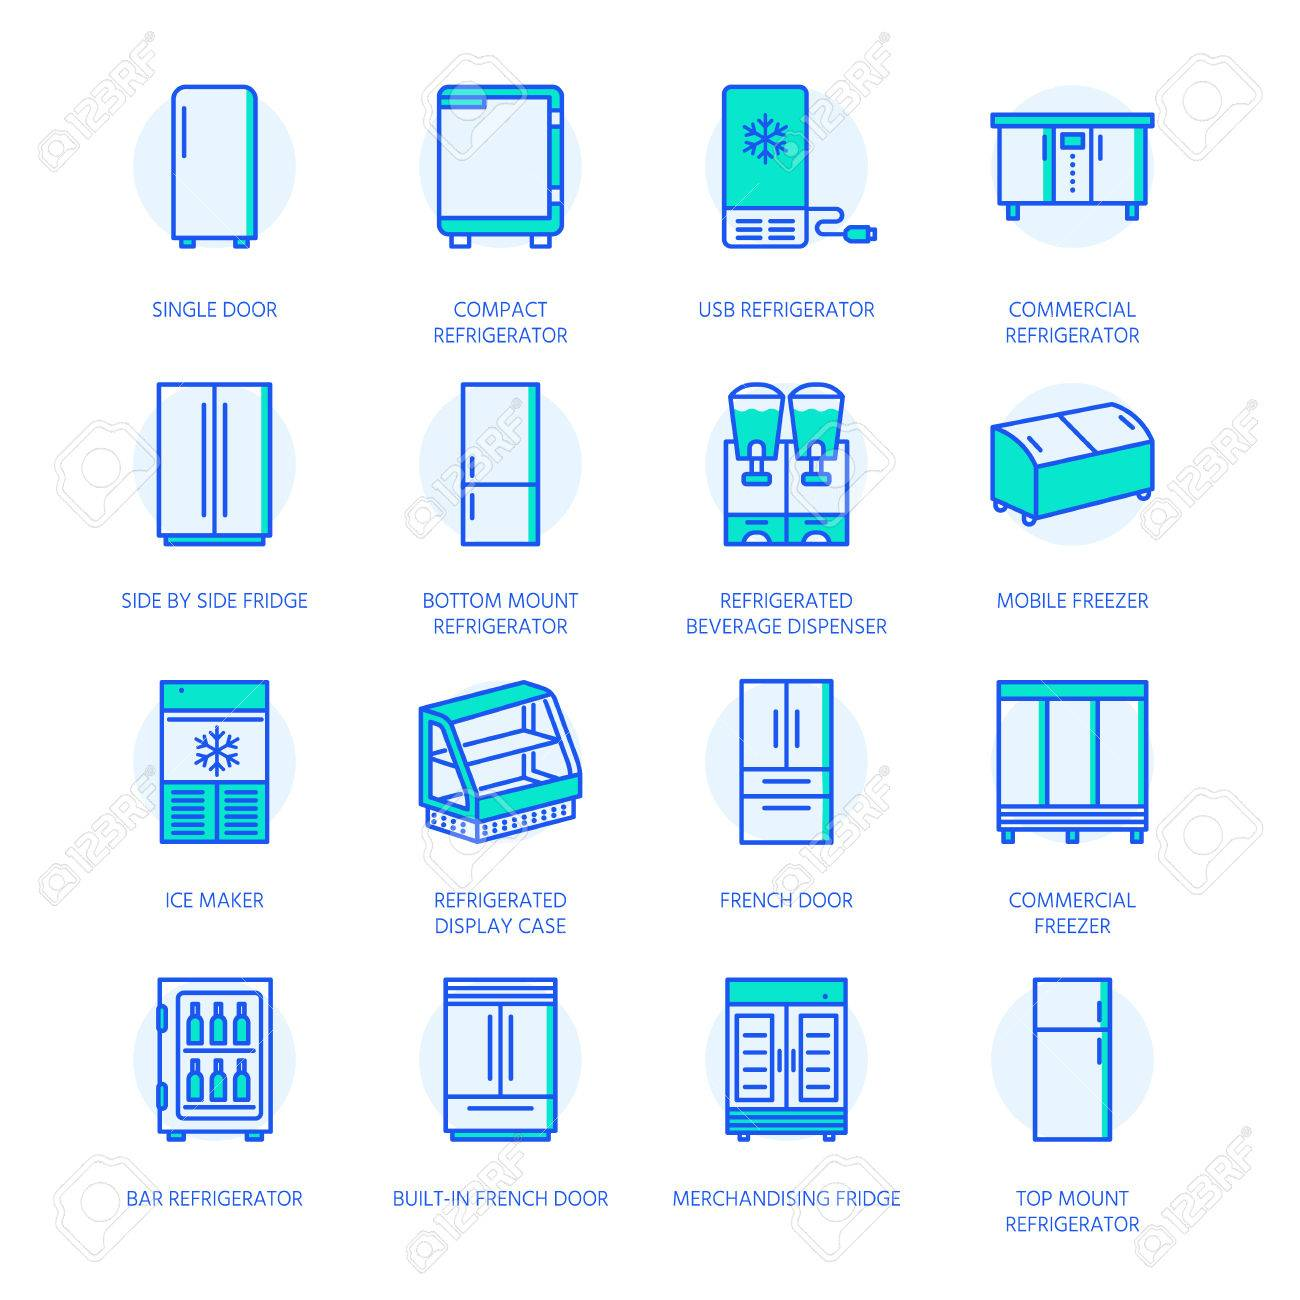 Refrigerators flat line icons. Fridge types, freezer, wine cooler, commercial major appliance, refrigerated display case. Thin linear colored signs for household equipment shop. - 80266772